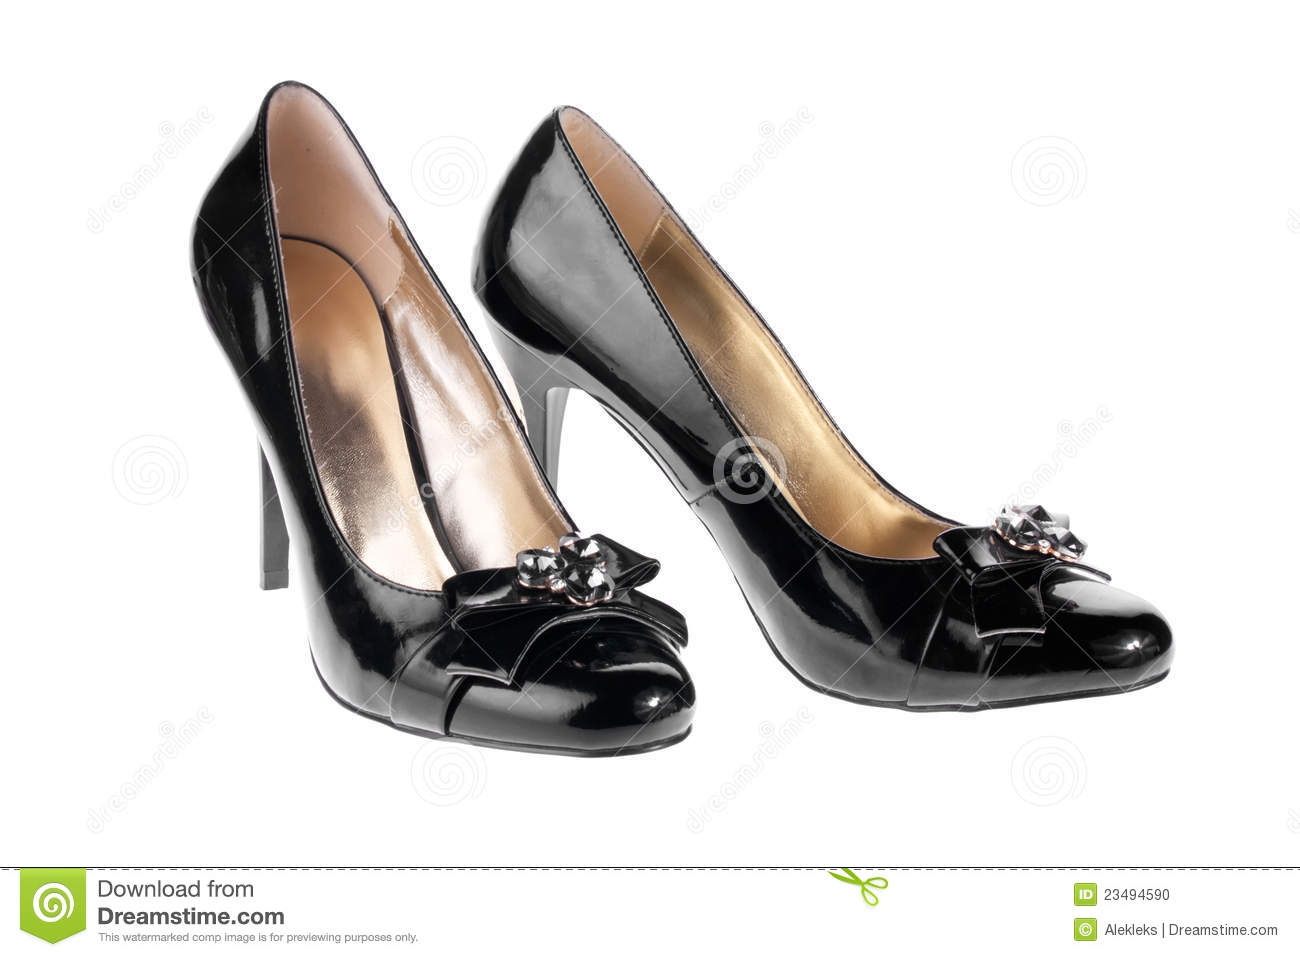 More similar stock images of ` Women s black patent leather shoes